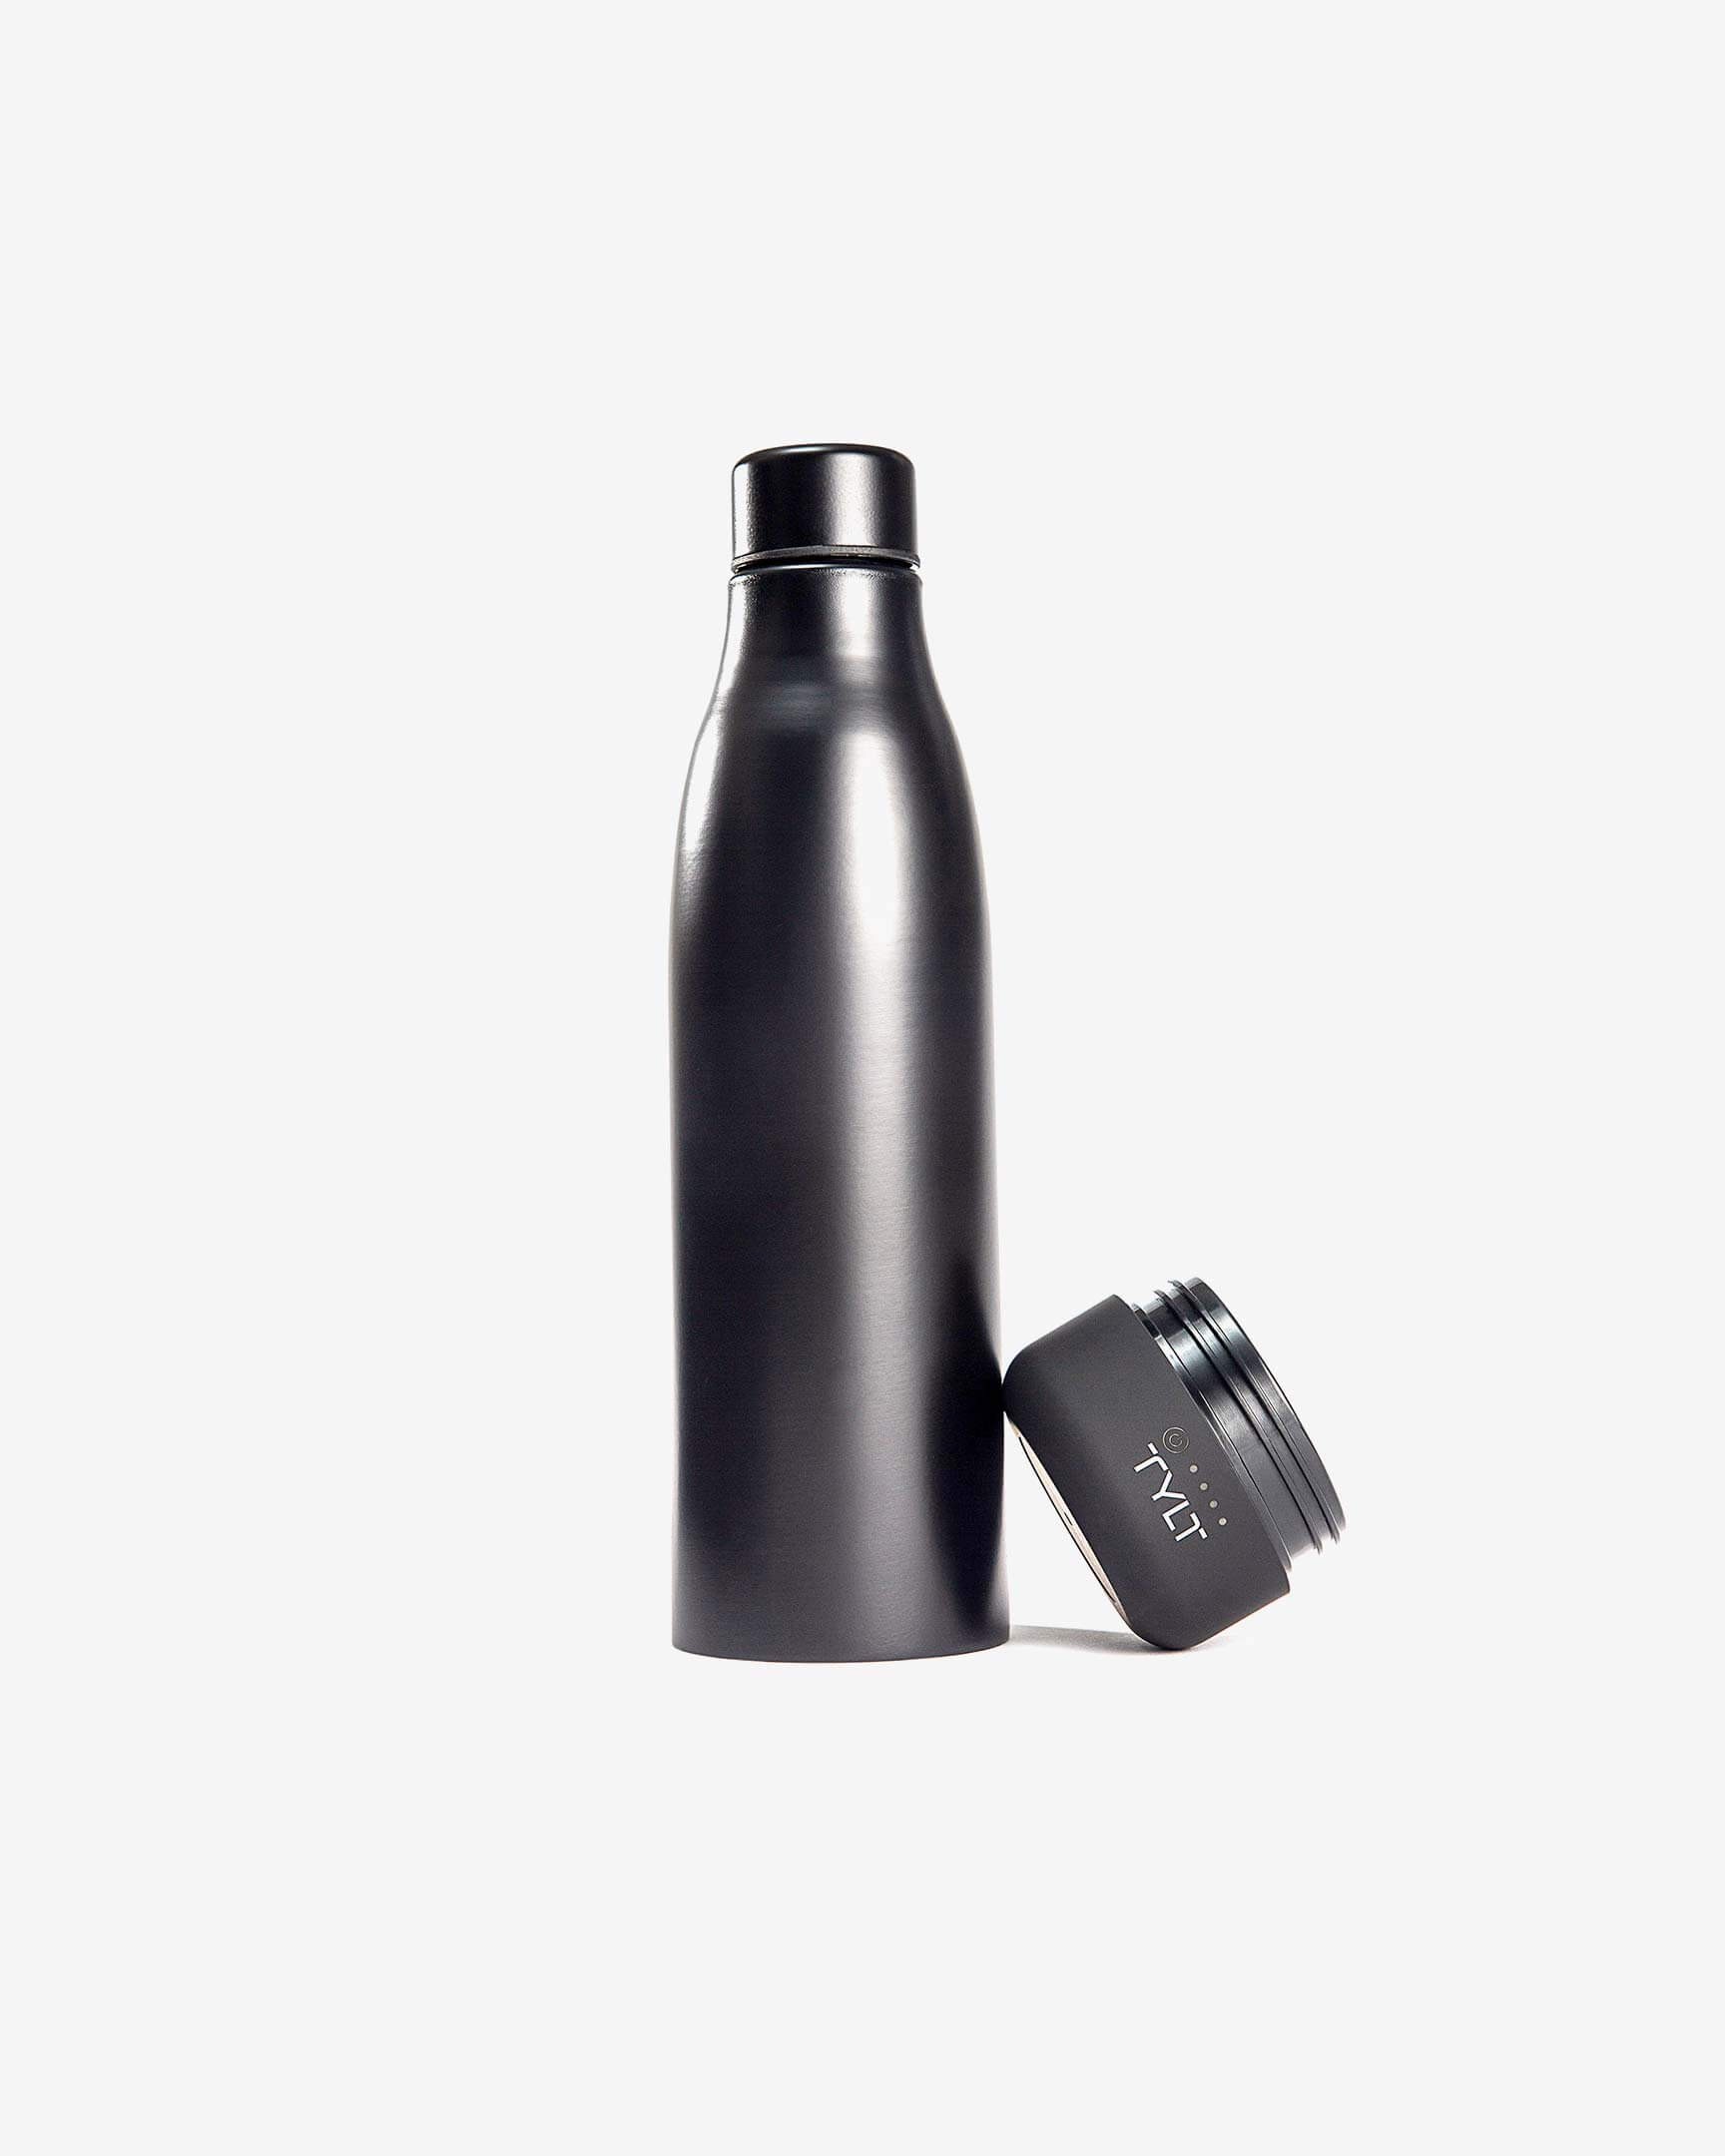 Bottle with the battery off, placed on the side